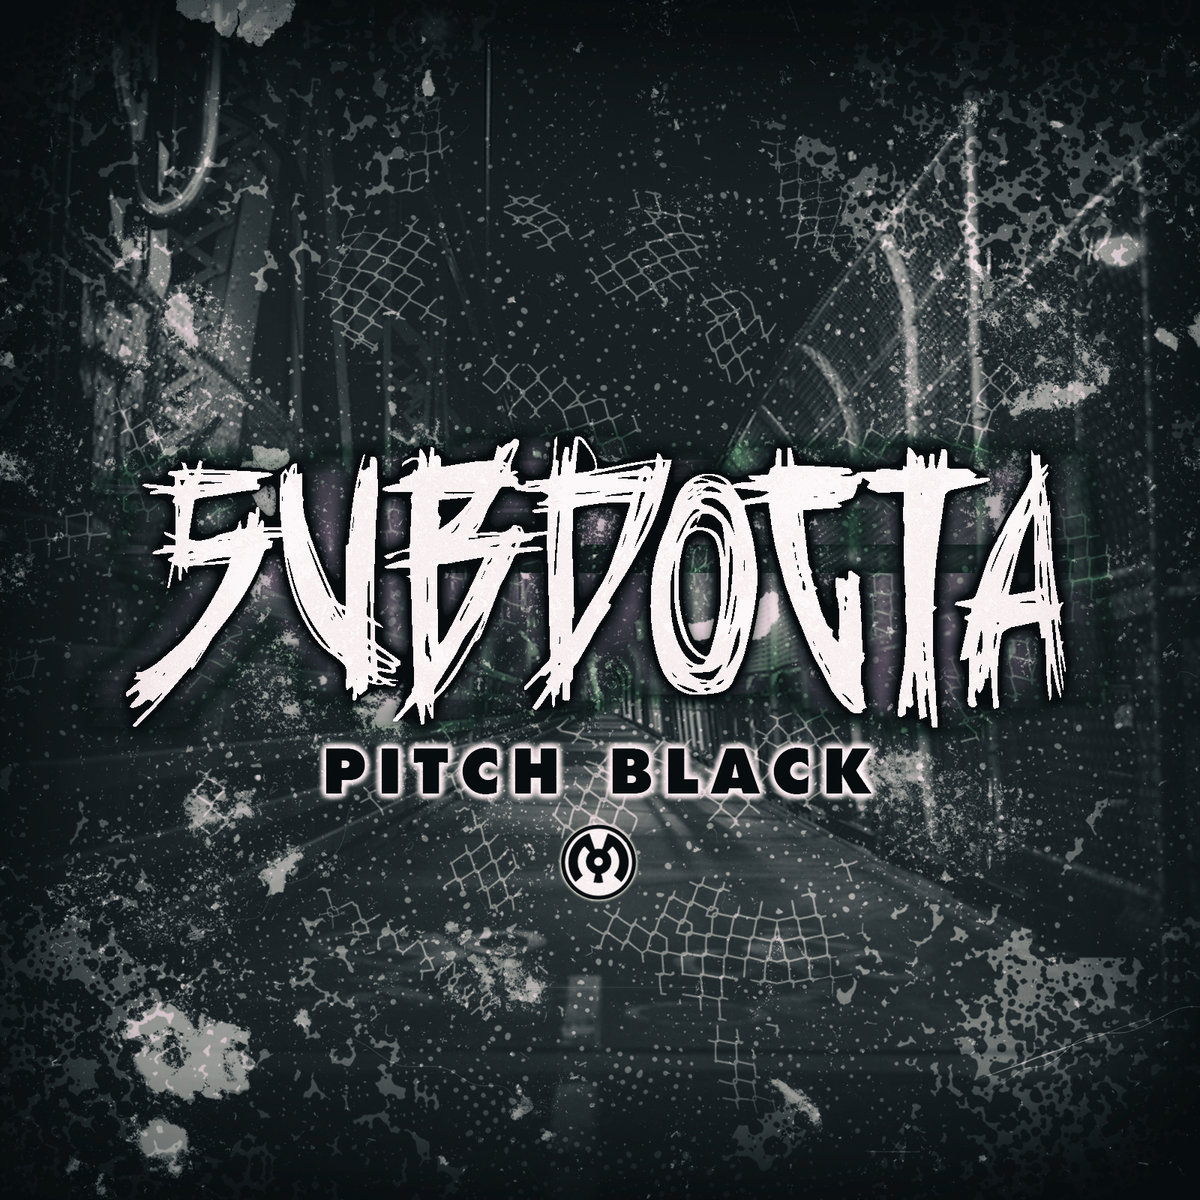 SubDocta - Pitch Black @ 'Pitch Black' album (electronic, dubstep)